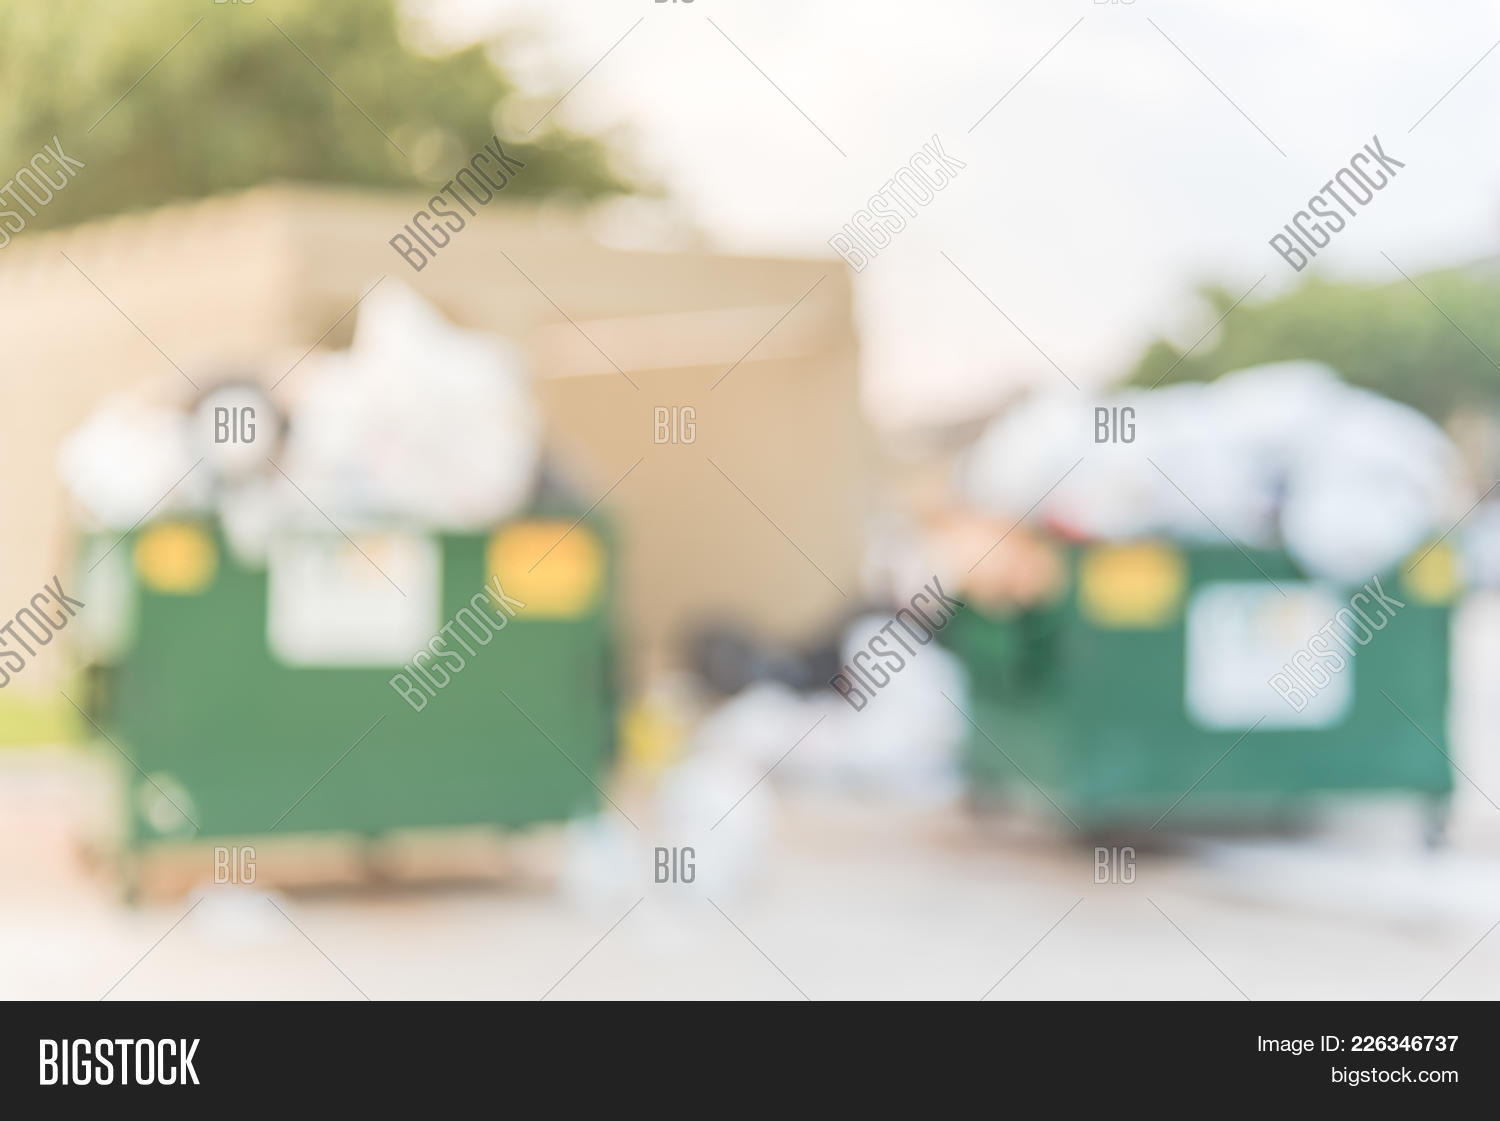 apartment,bag,big,bin,blurred,can,cardboard,city,collection,consumer,container,debris,dirty,discard,disposal,dispose,dumpster,dustbin,ecology,environment,full,garbage,goods,heap,household,houshold,industry,large,leftover,litter,material,overfill,overflow,overfull,pile,plastic,pollution,protection,recycle,residential,rubbish,sack,society,street,throw-away,trash,trashcan,urban,waste,yard